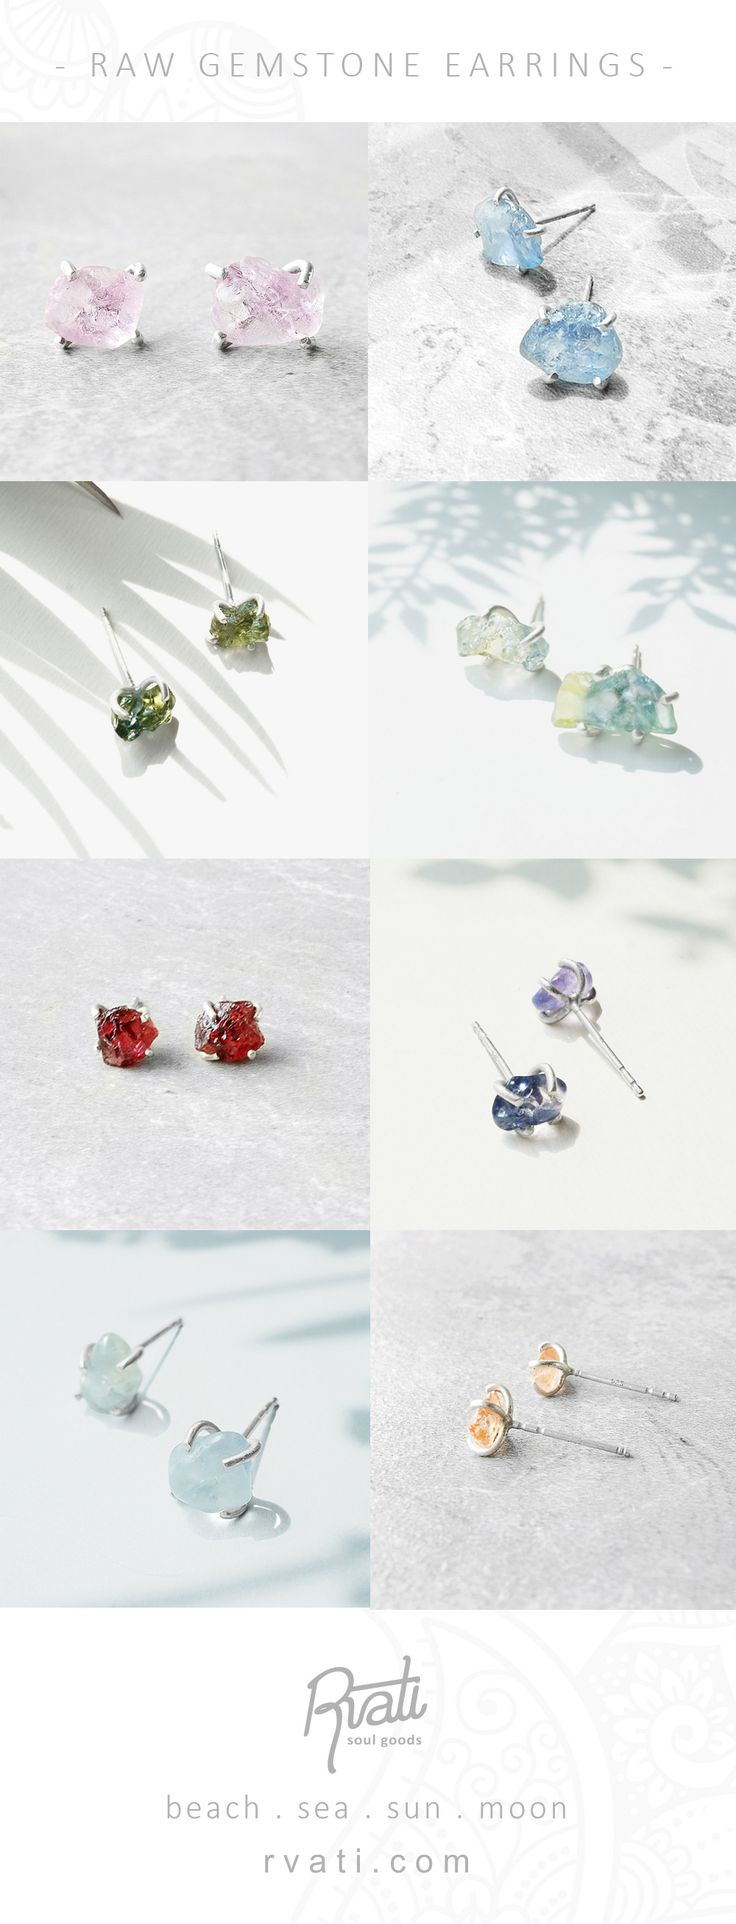 Raw Sapphire Gemstone Stud Earrings with Sterling Silver - 4 Prong Set Studs - Rough Gemstone Earring - Heritage Chic Jewelry - Gift Idea for giving - BOHO - Jewelry Yoga - Zodiac Stone of Taurus